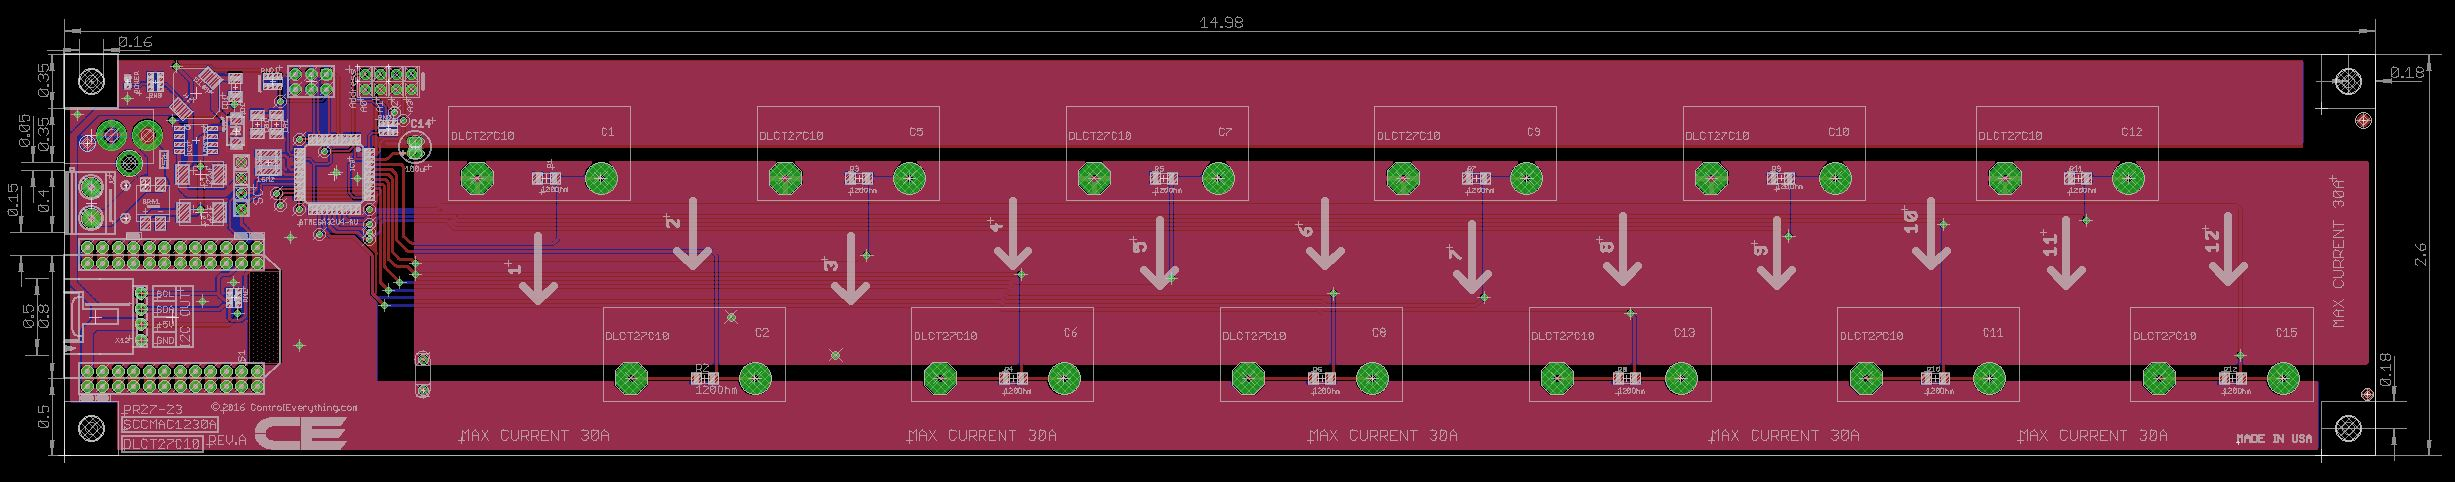 12 Channel On Board Ac Current Monitor For Particle Photon Alternating Diagram B The Produced In Wiring